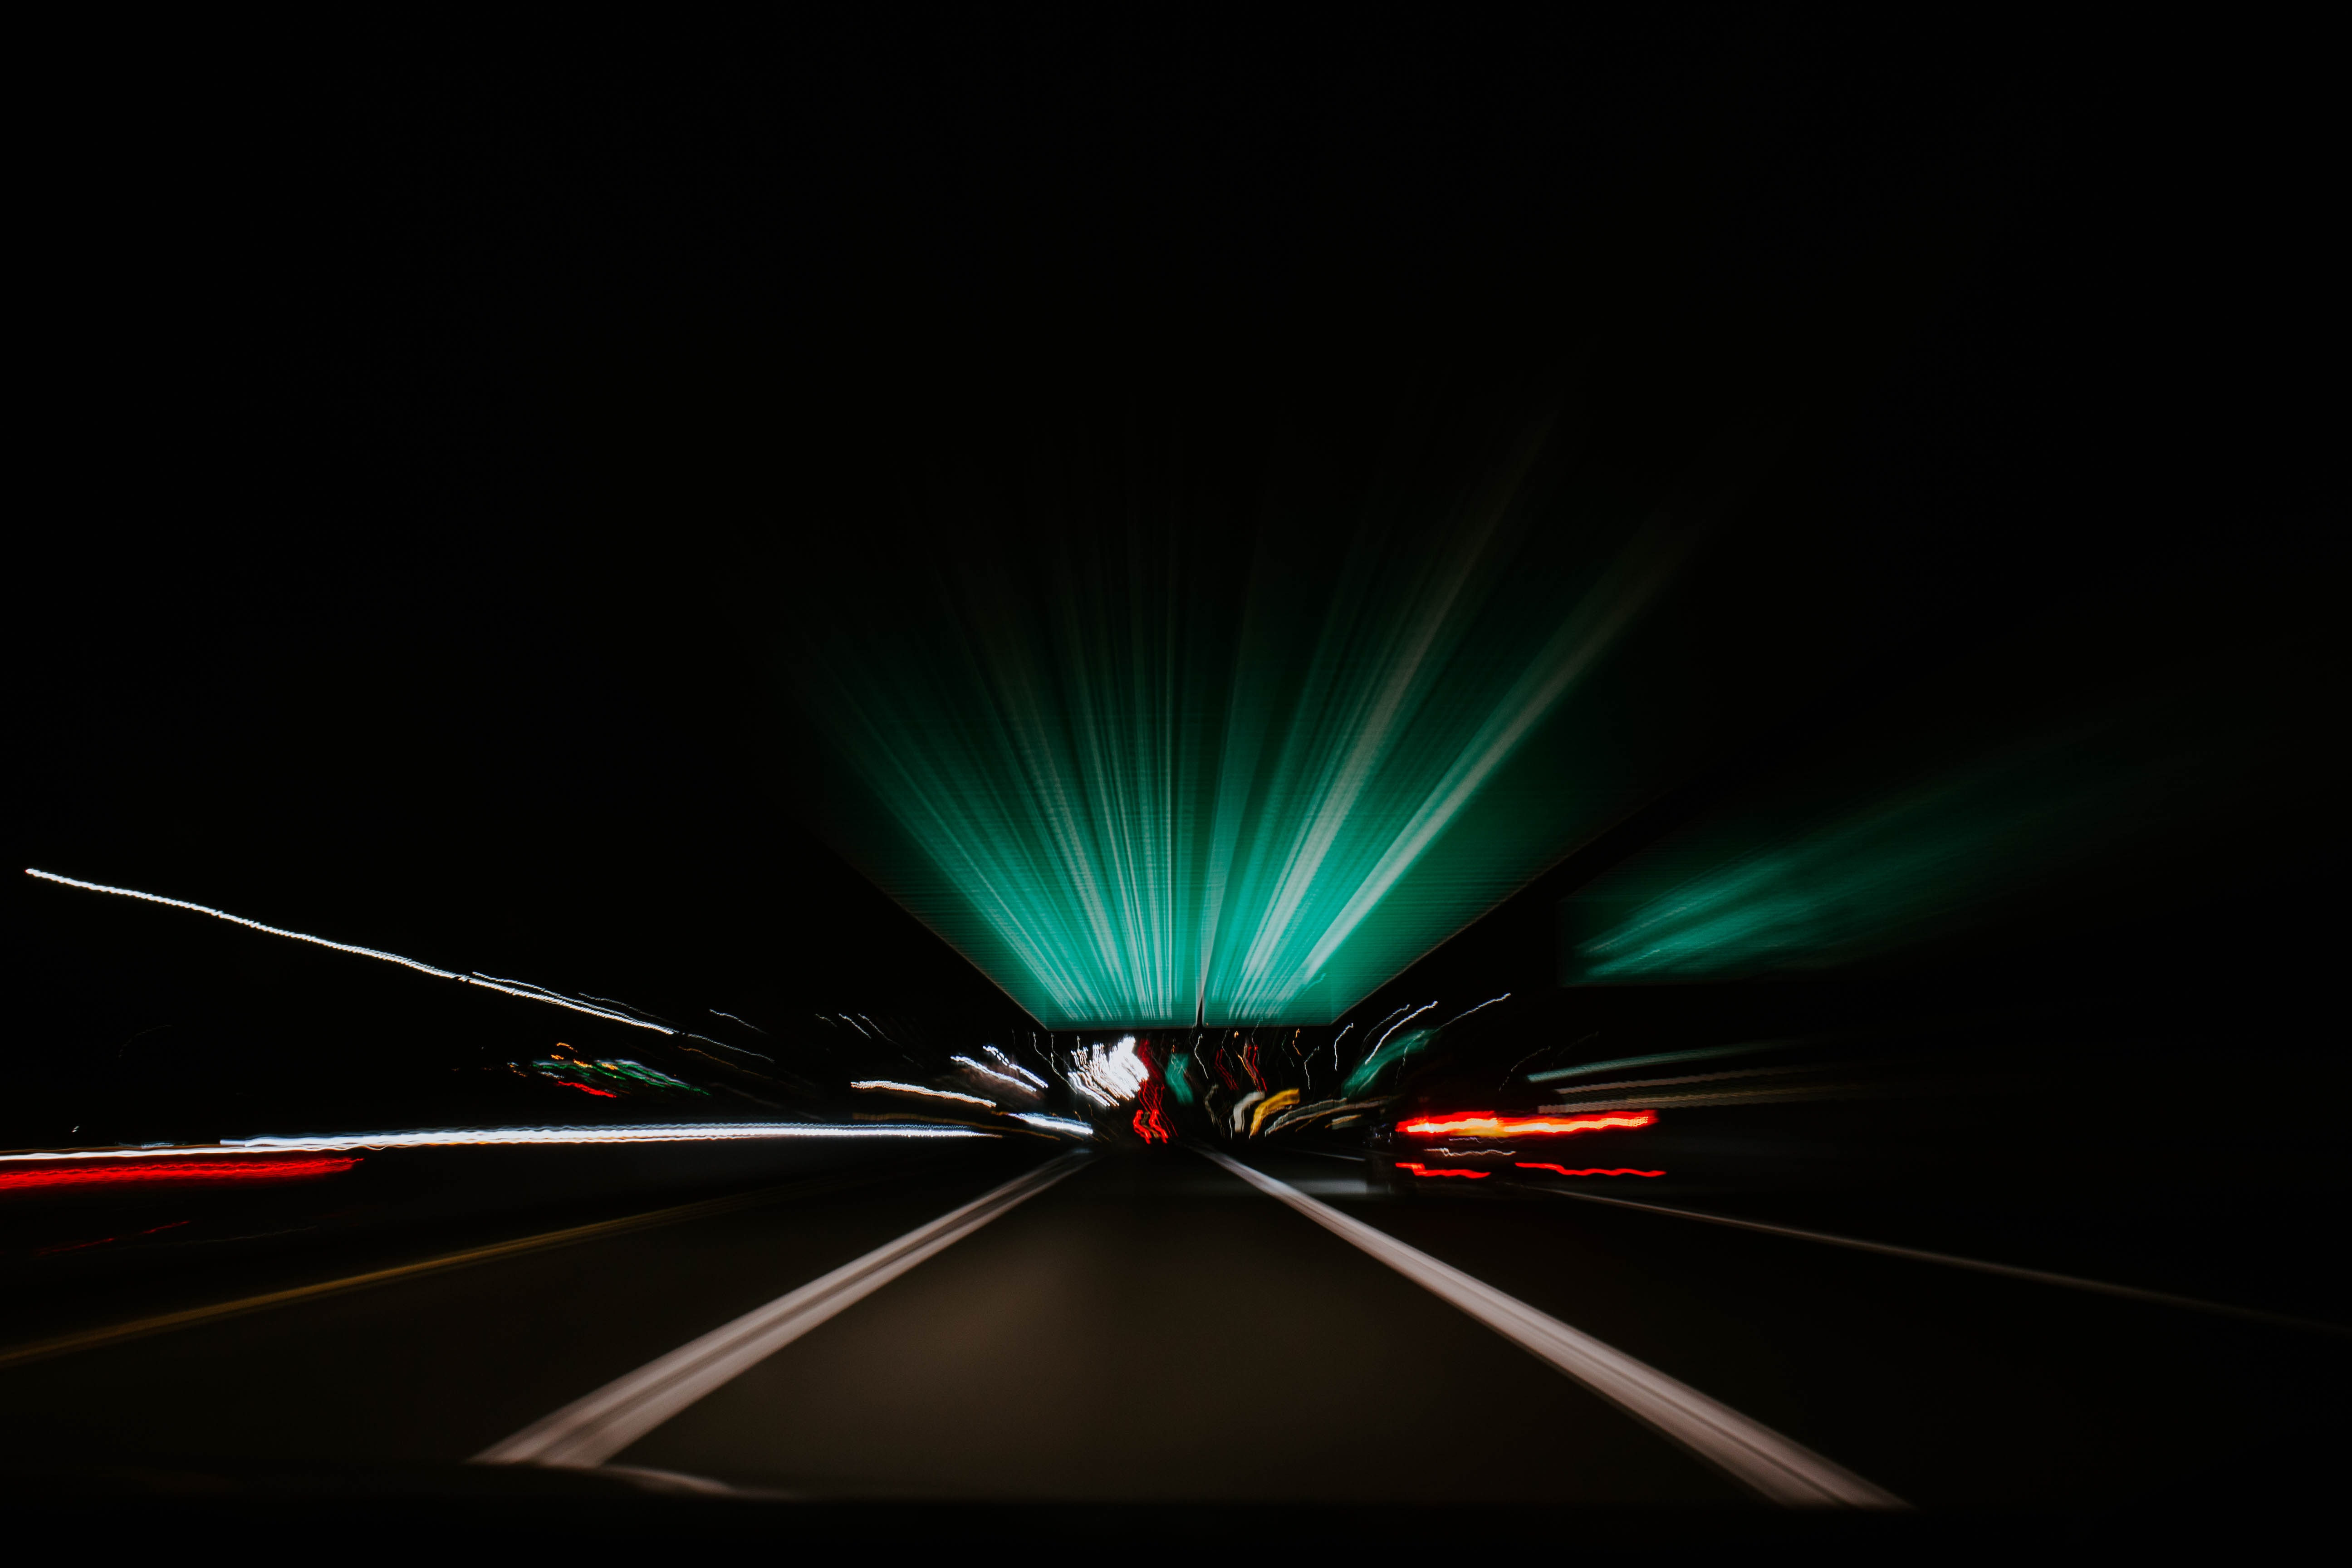 time-lapse photography of vehicle on black top-road at night